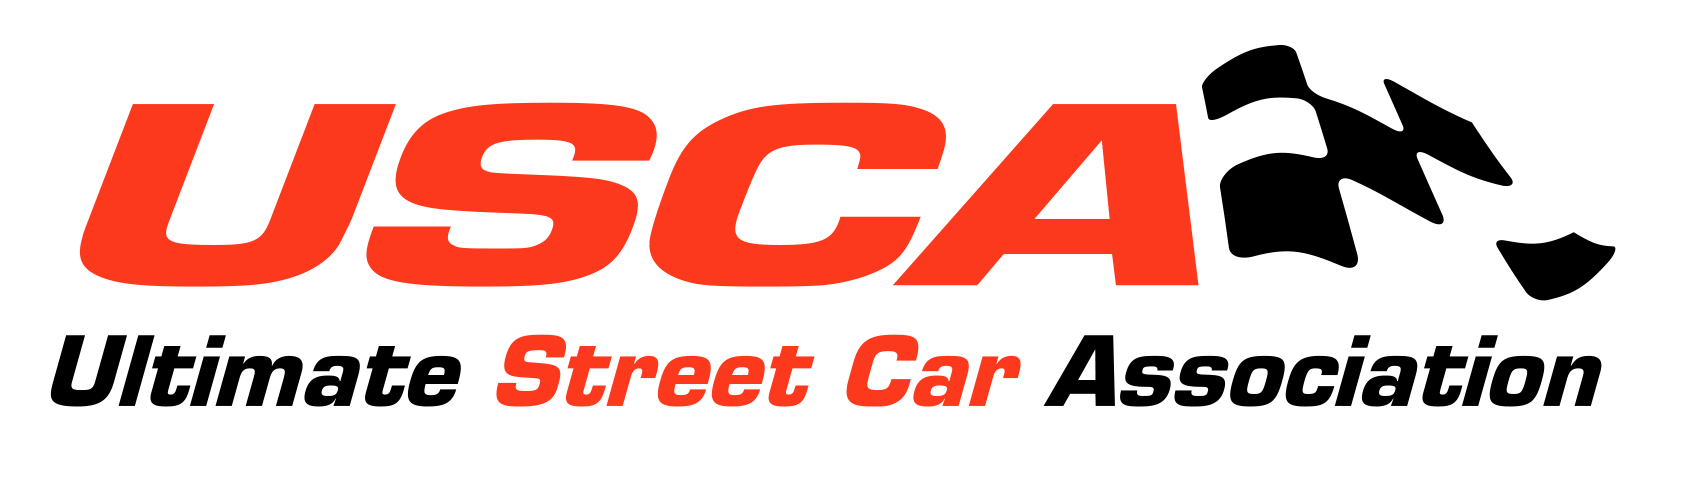 Ultimate Street Car Association